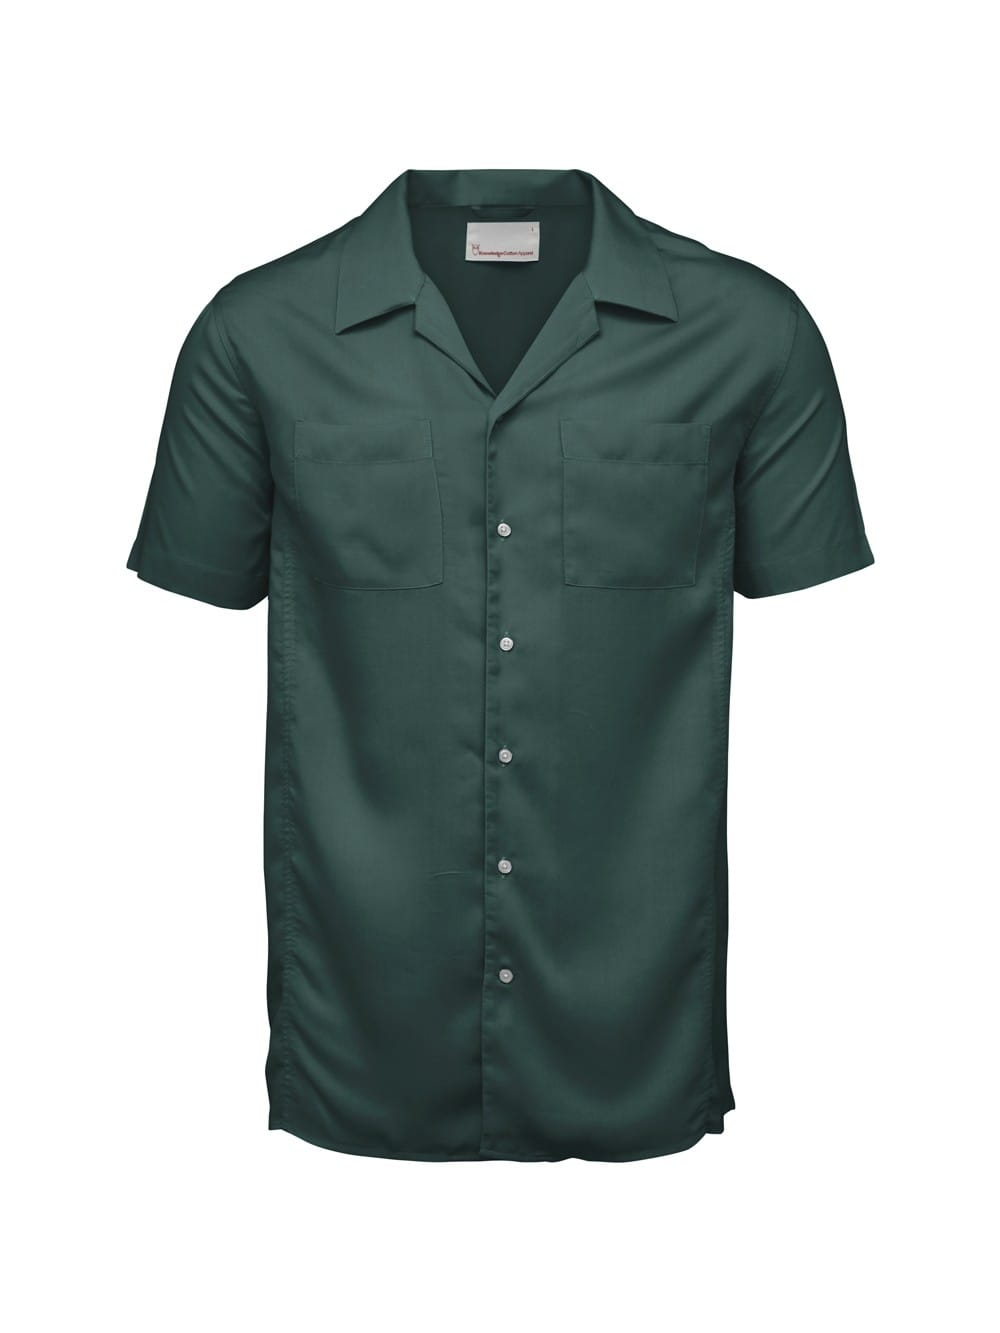 Vegan shirt with short sleeves made of tencel